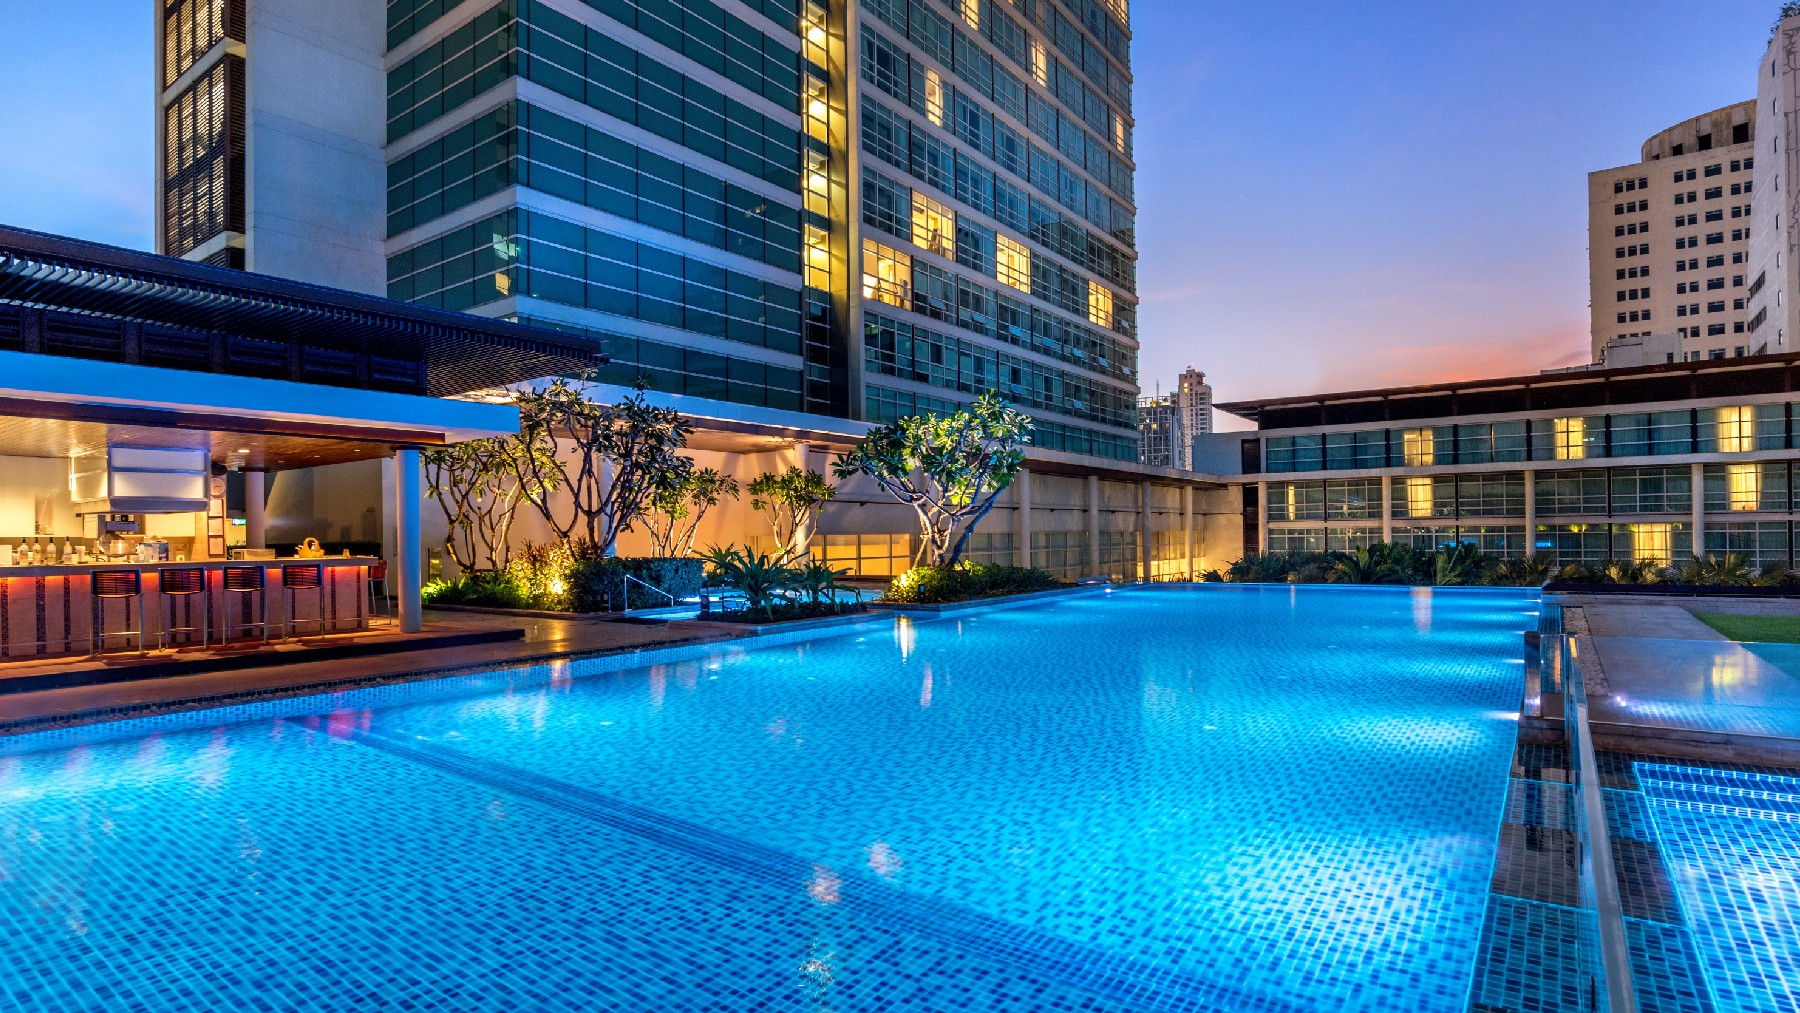 Bangkok Hotel Swimming Pool